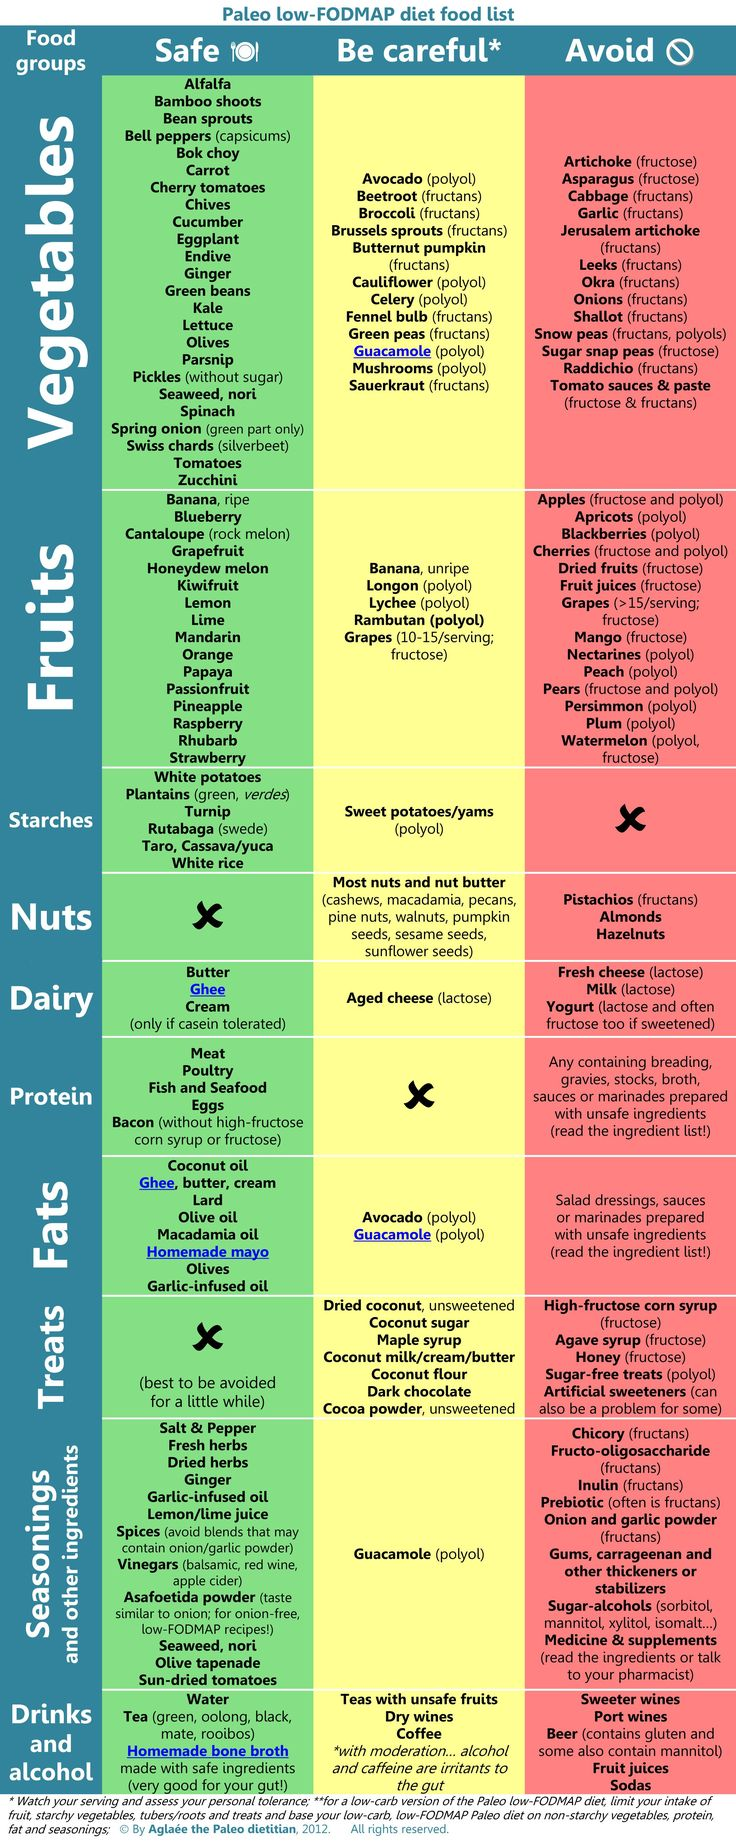 FODMAPs Table